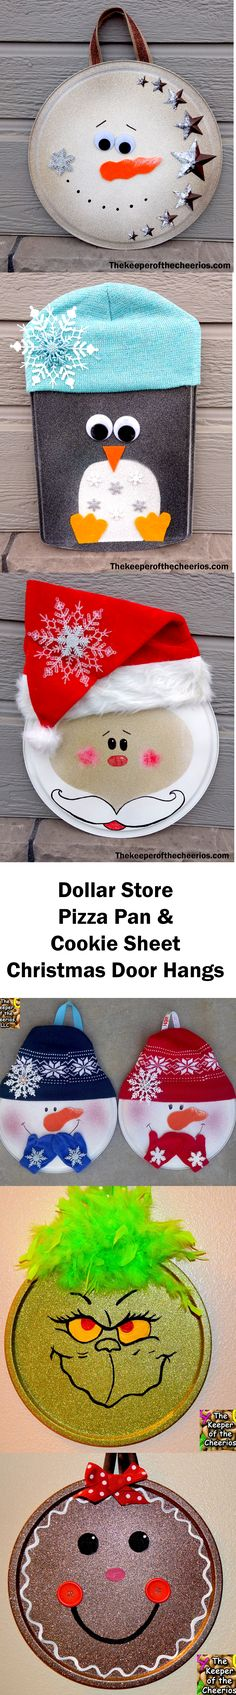 Christmas Pizza Pan Door Hangs, Christmas pizza pans, Christmas wreath ideas